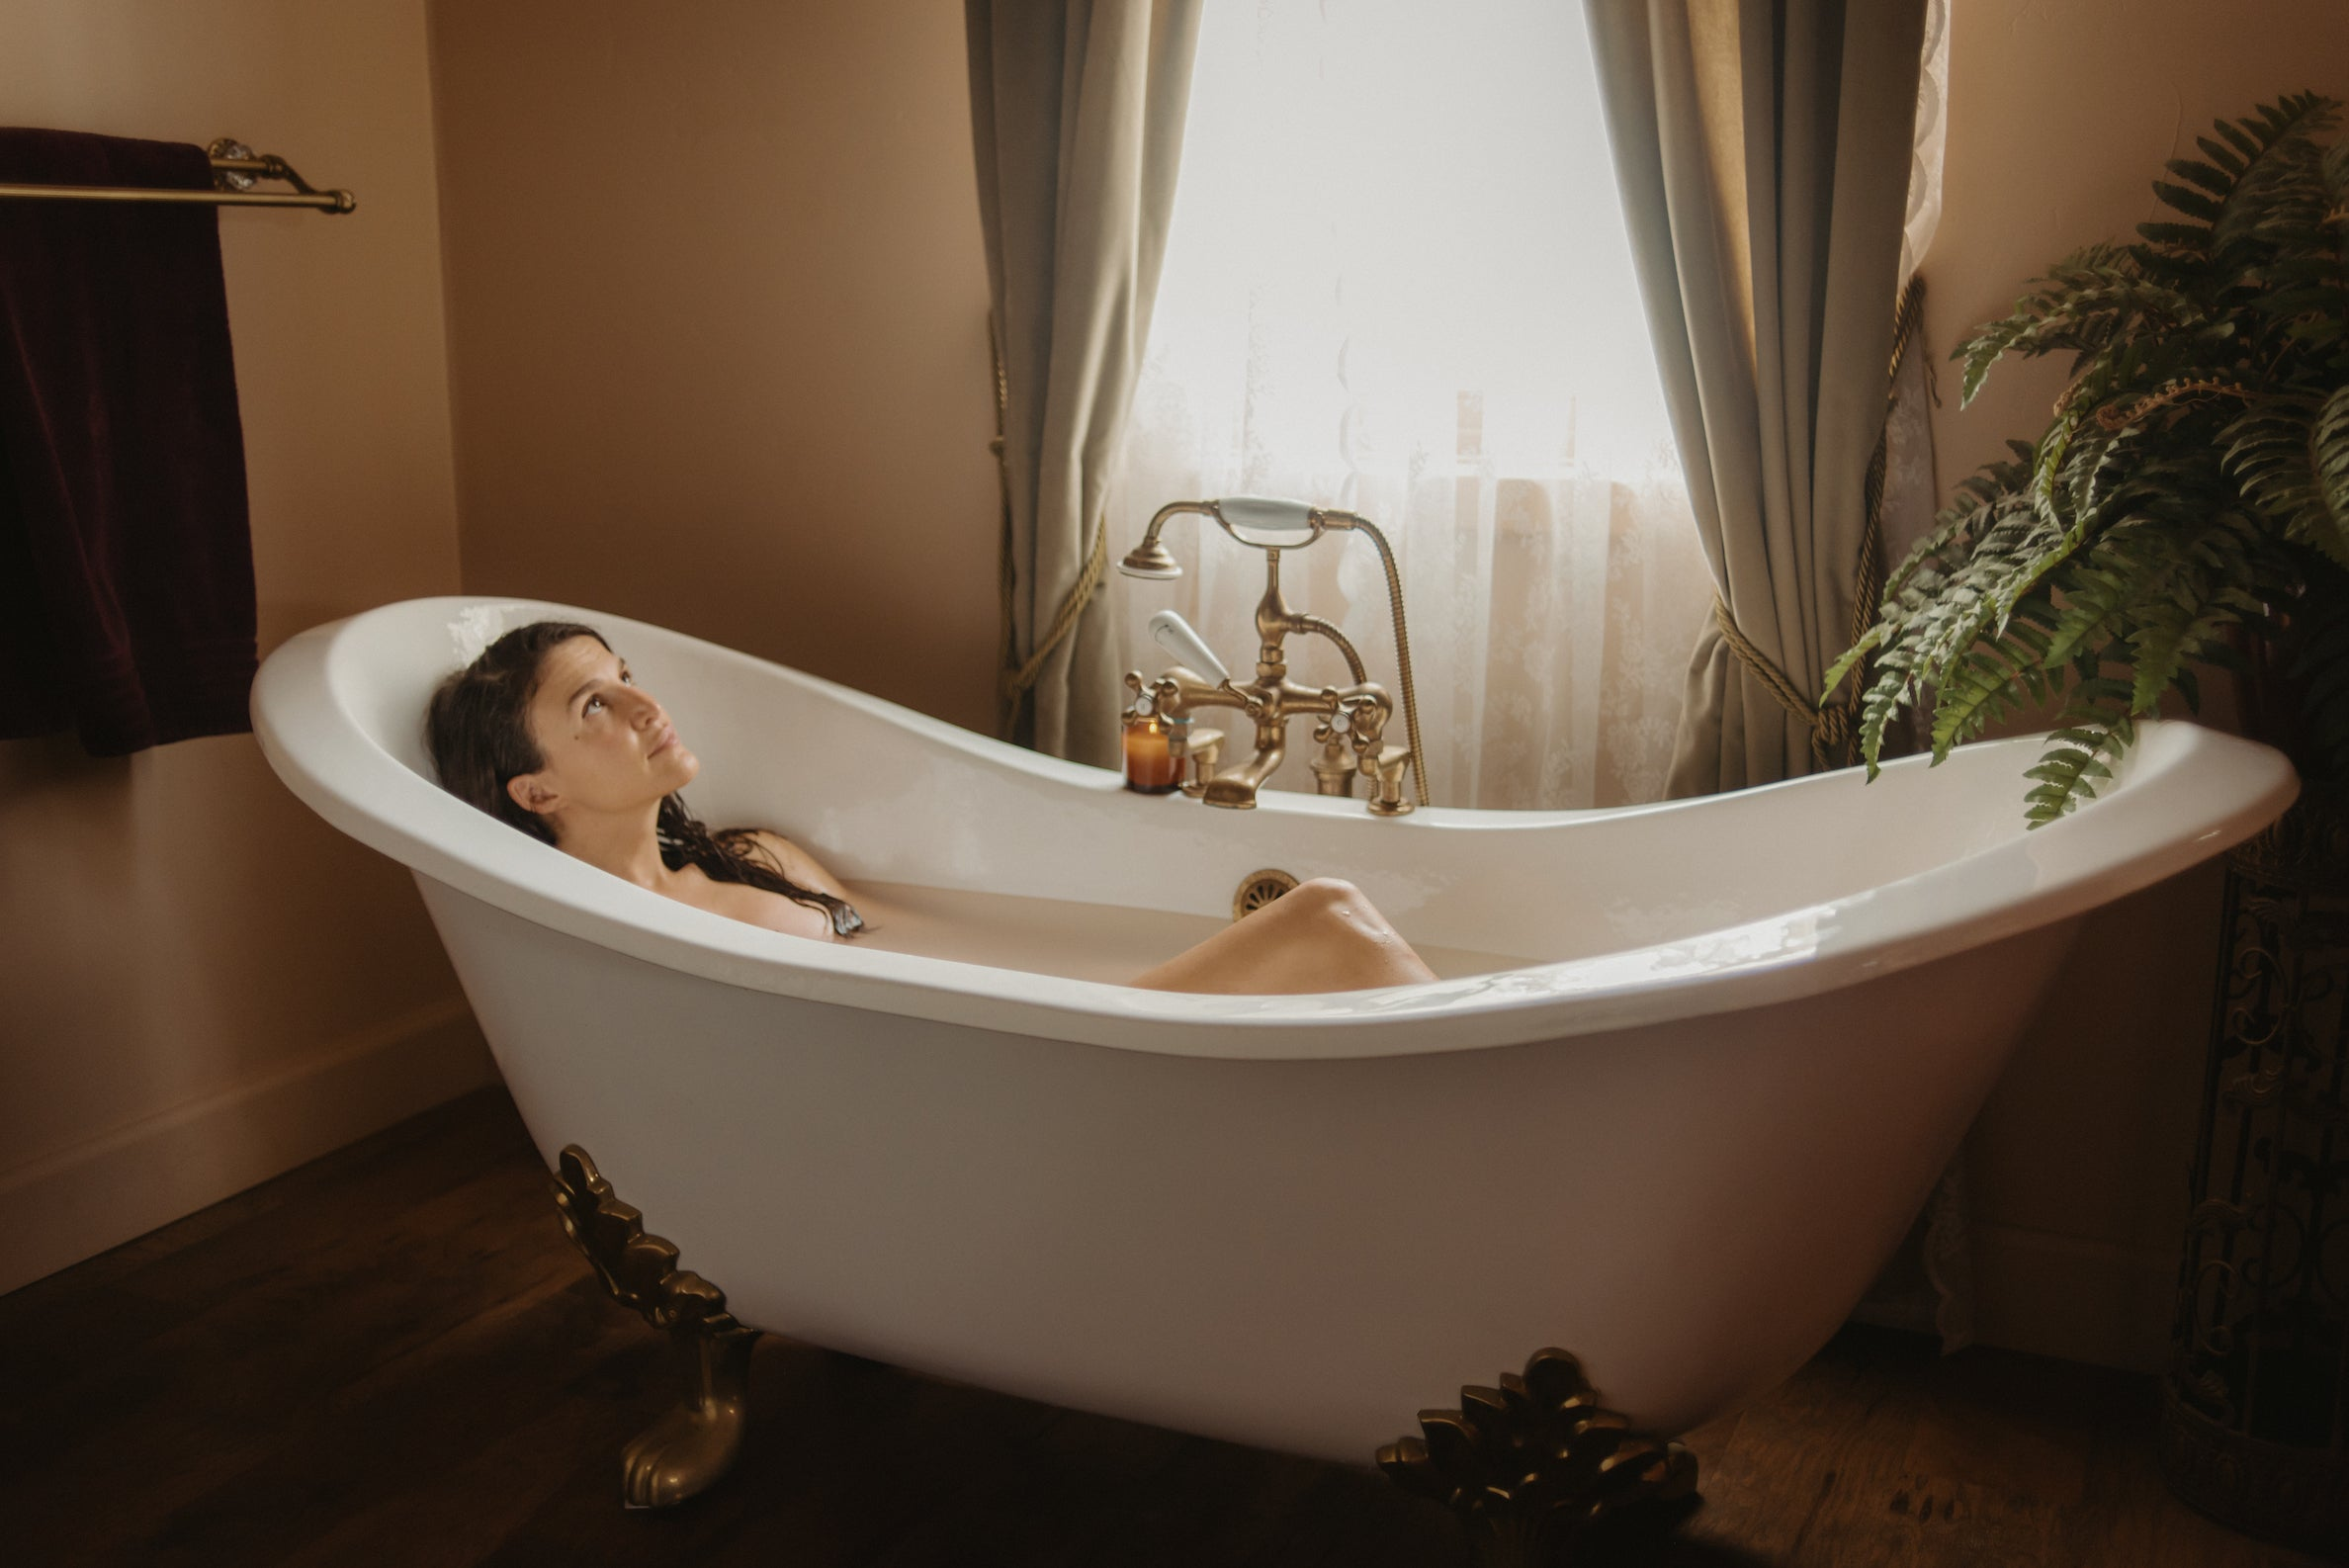 Bath Ritual Setting intentions